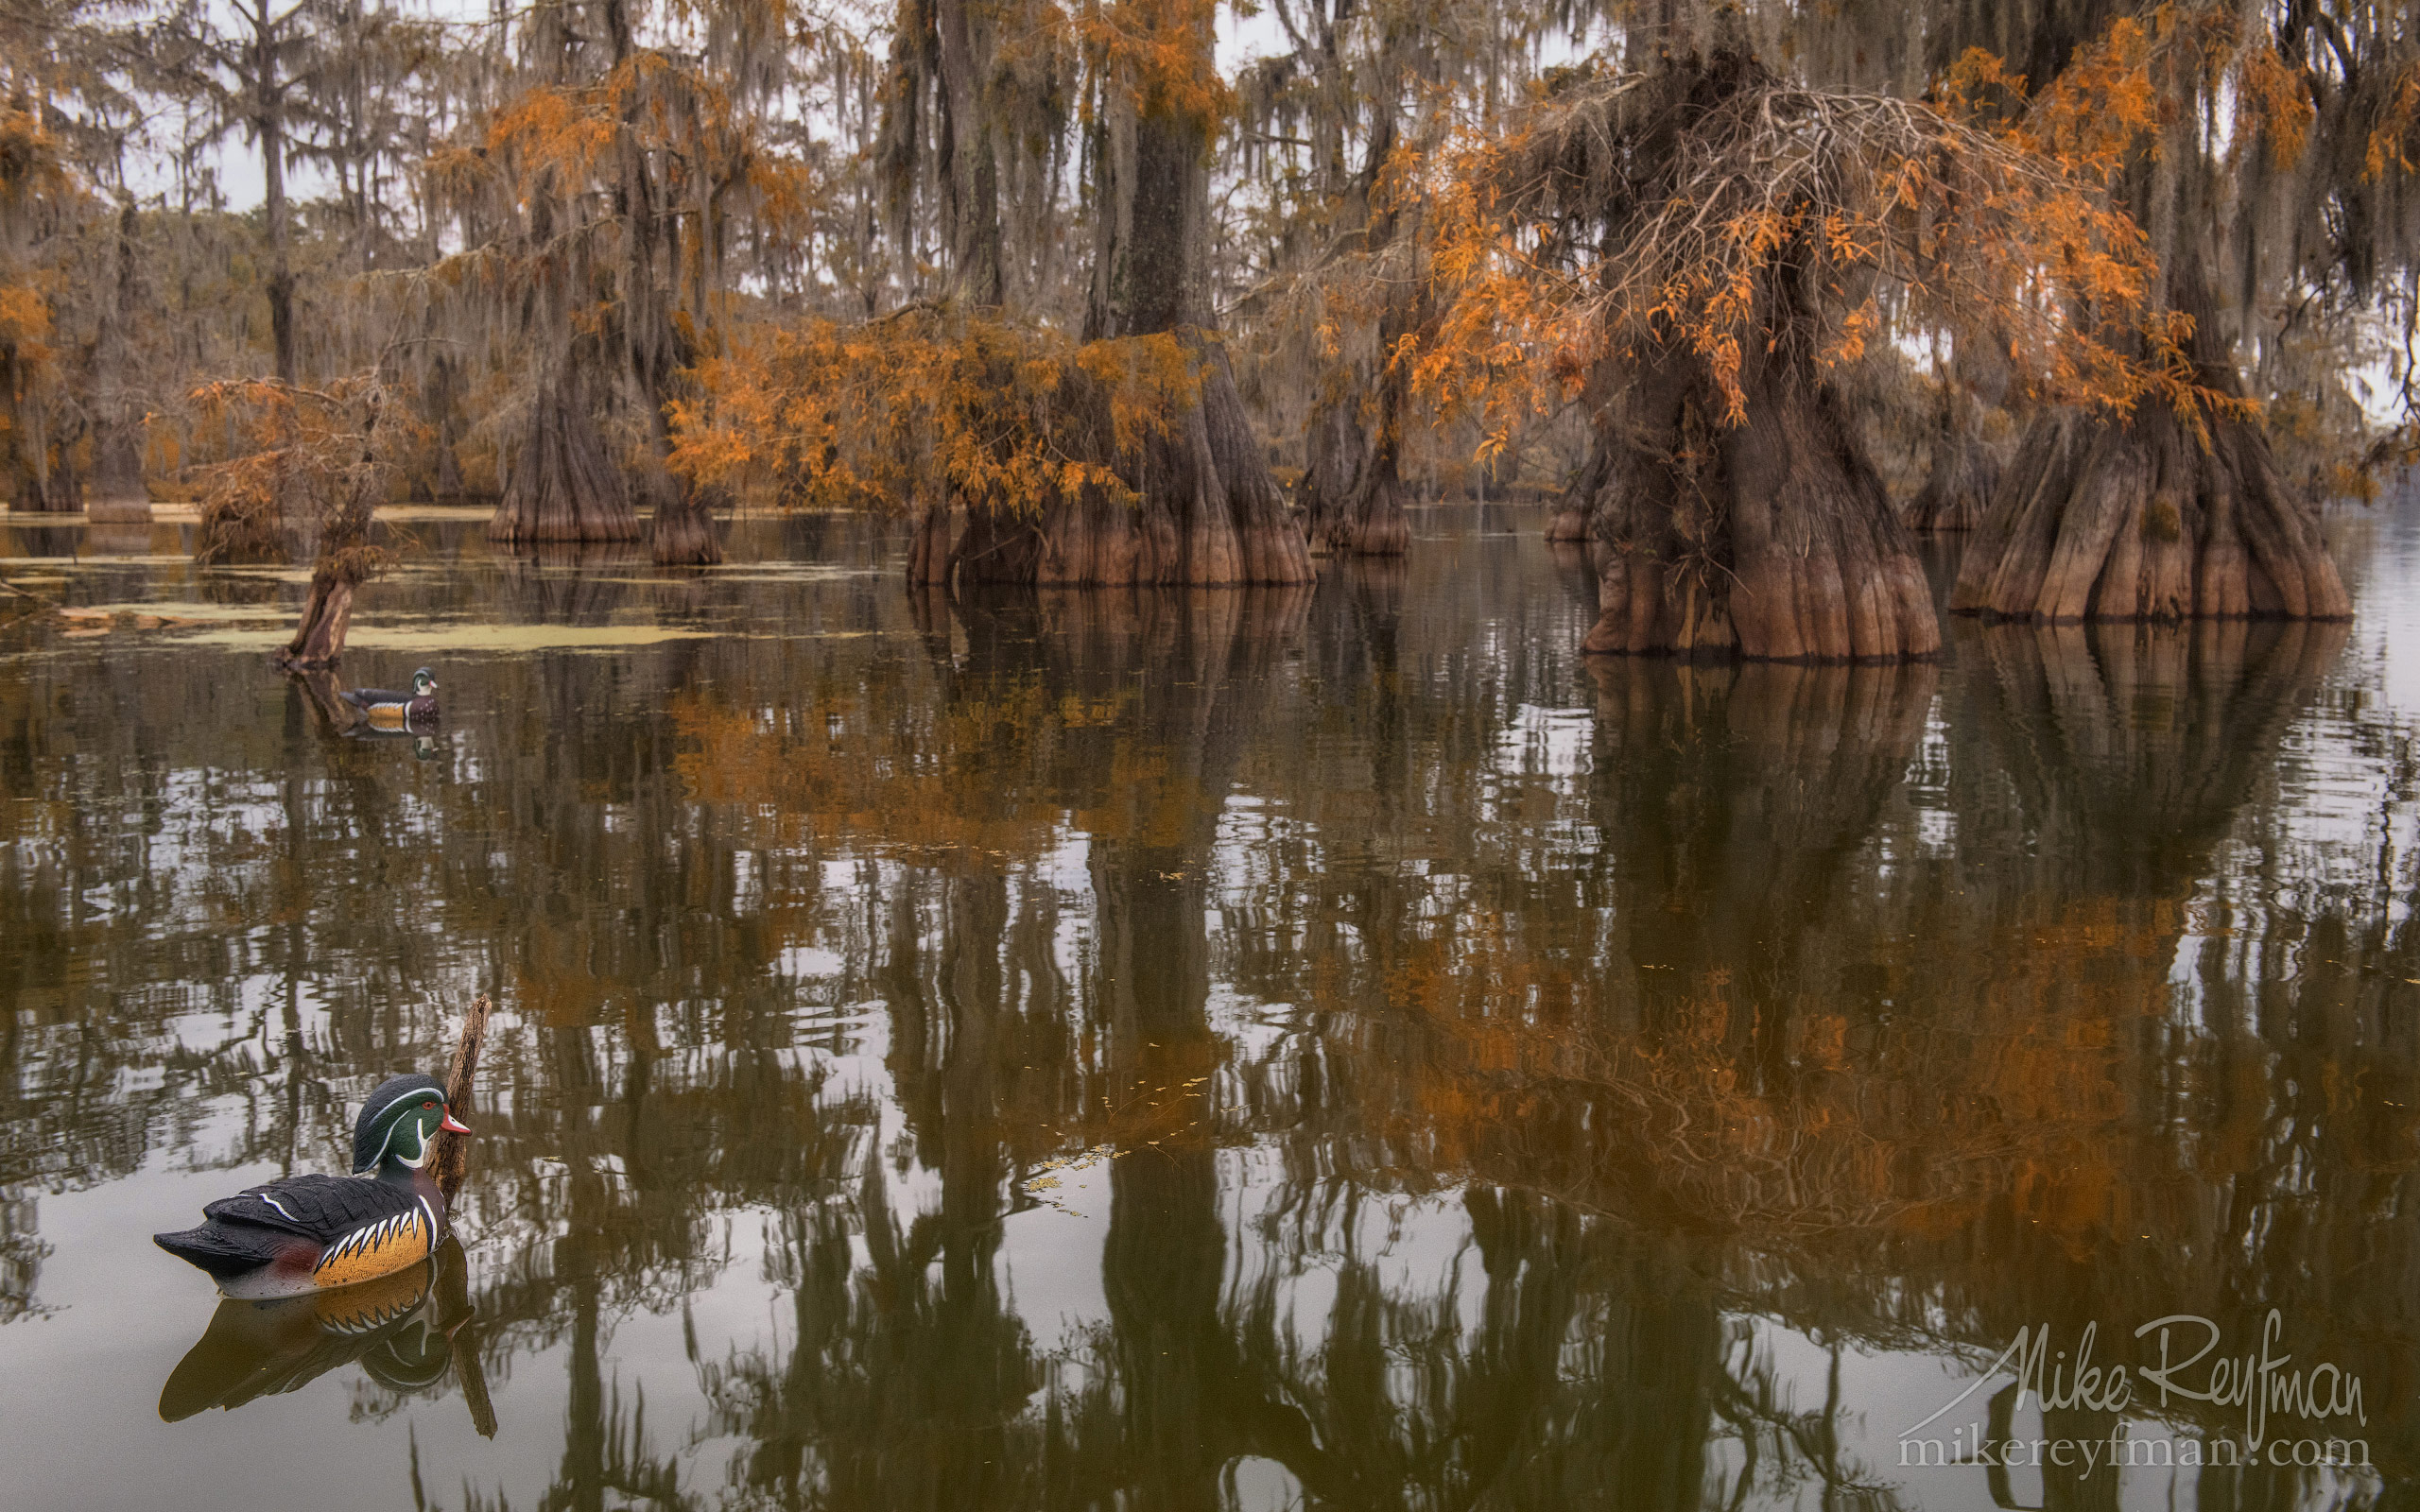 Duck decoys and Bald Cypress Trees. Lake Martin, Louisiana, US 090-LT1-50A2536.jpg - Bold Cypress and Tupelo Trees in the swamps of Atchafalaya River Basin. Caddo, Martin and Fousse Lakes. Texas/Louisiana, USA. - Mike Reyfman Photography